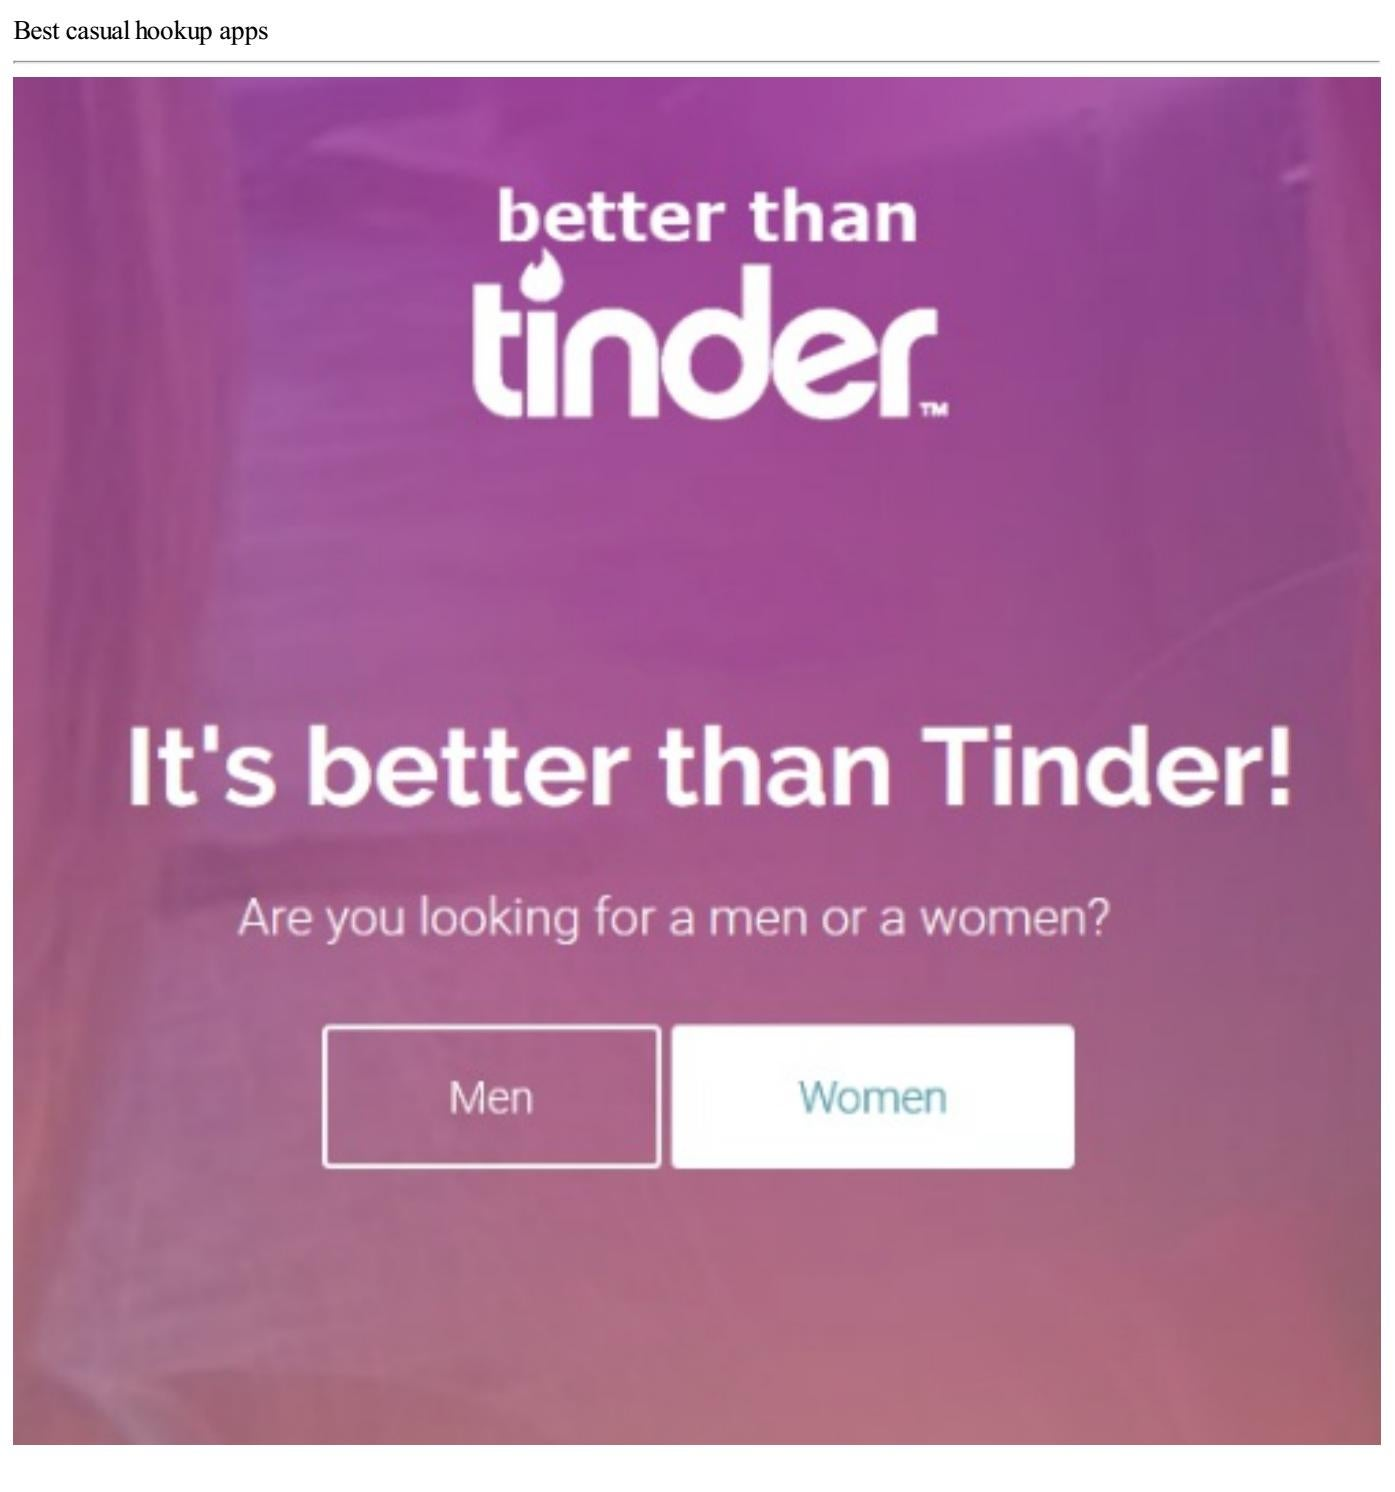 casual hookup apps